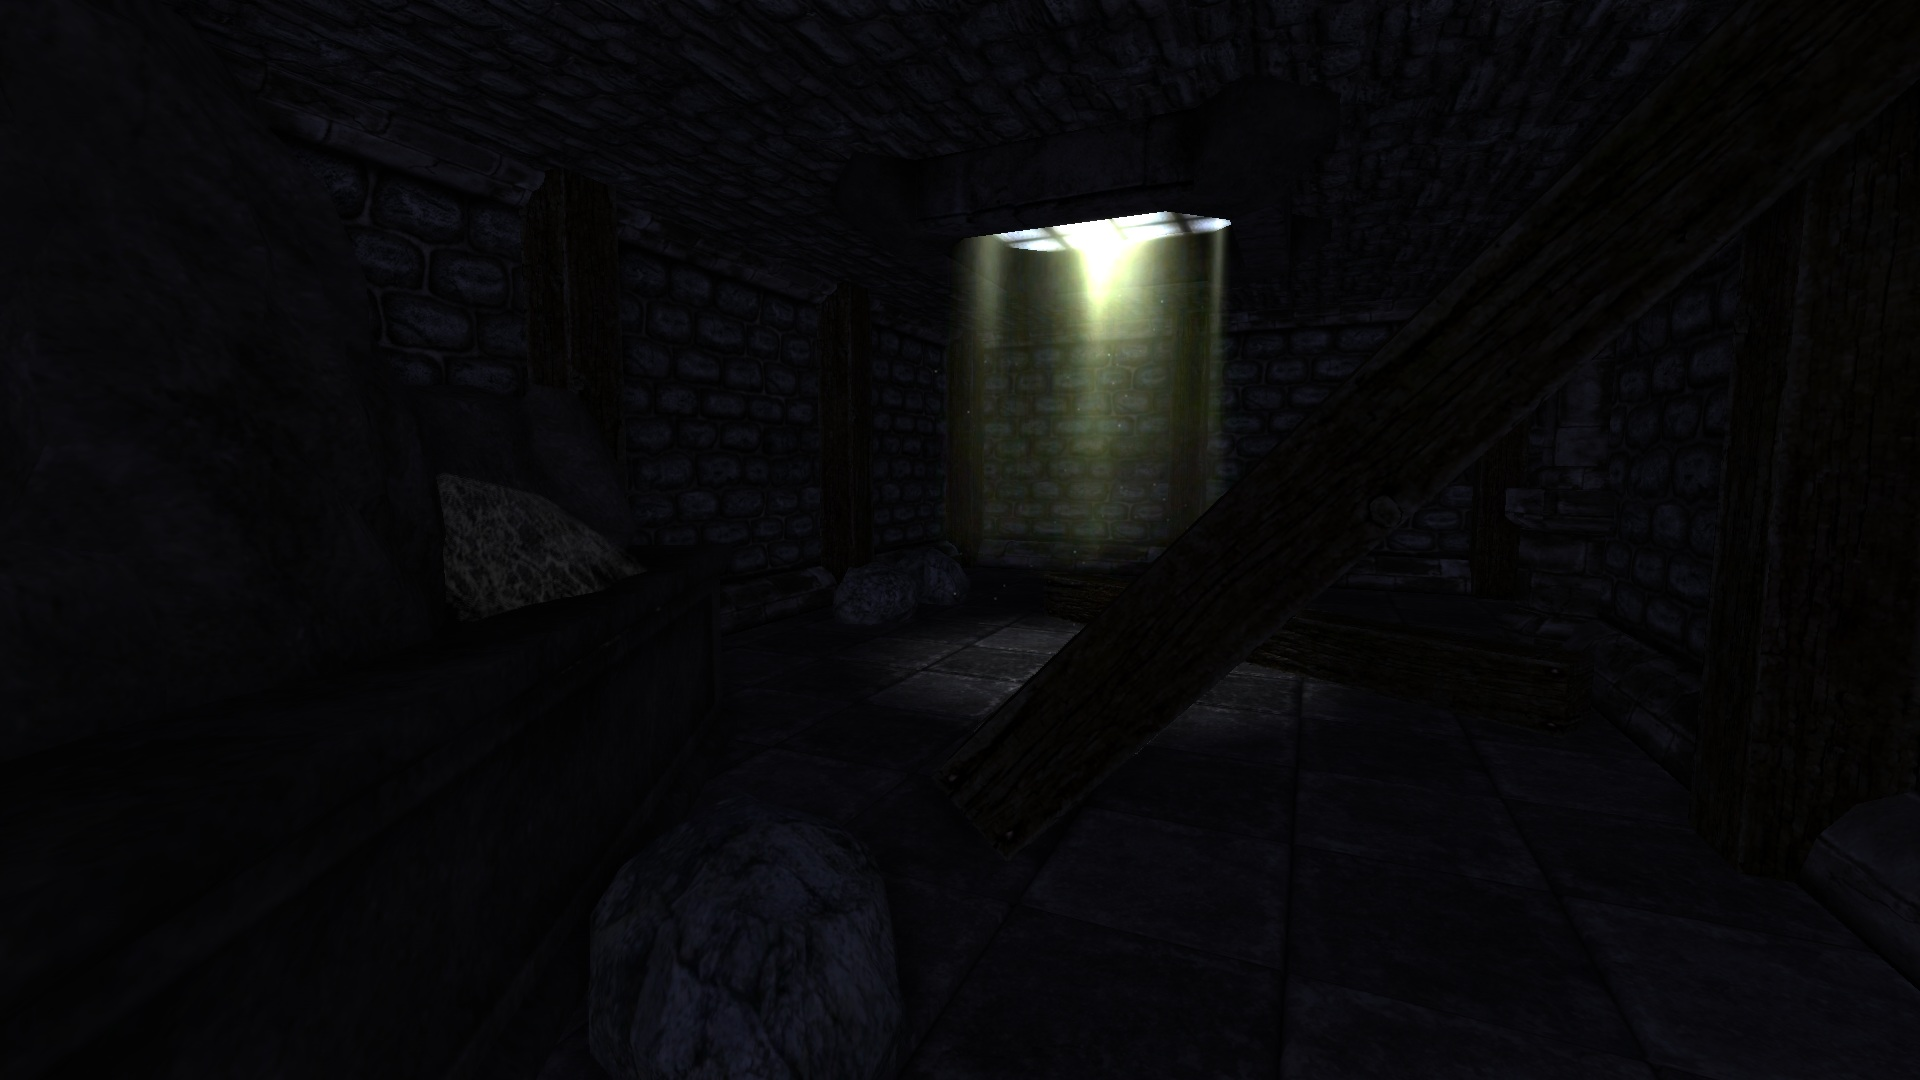 Dream Sequence 1 Abandoned Castle Hallway Image The